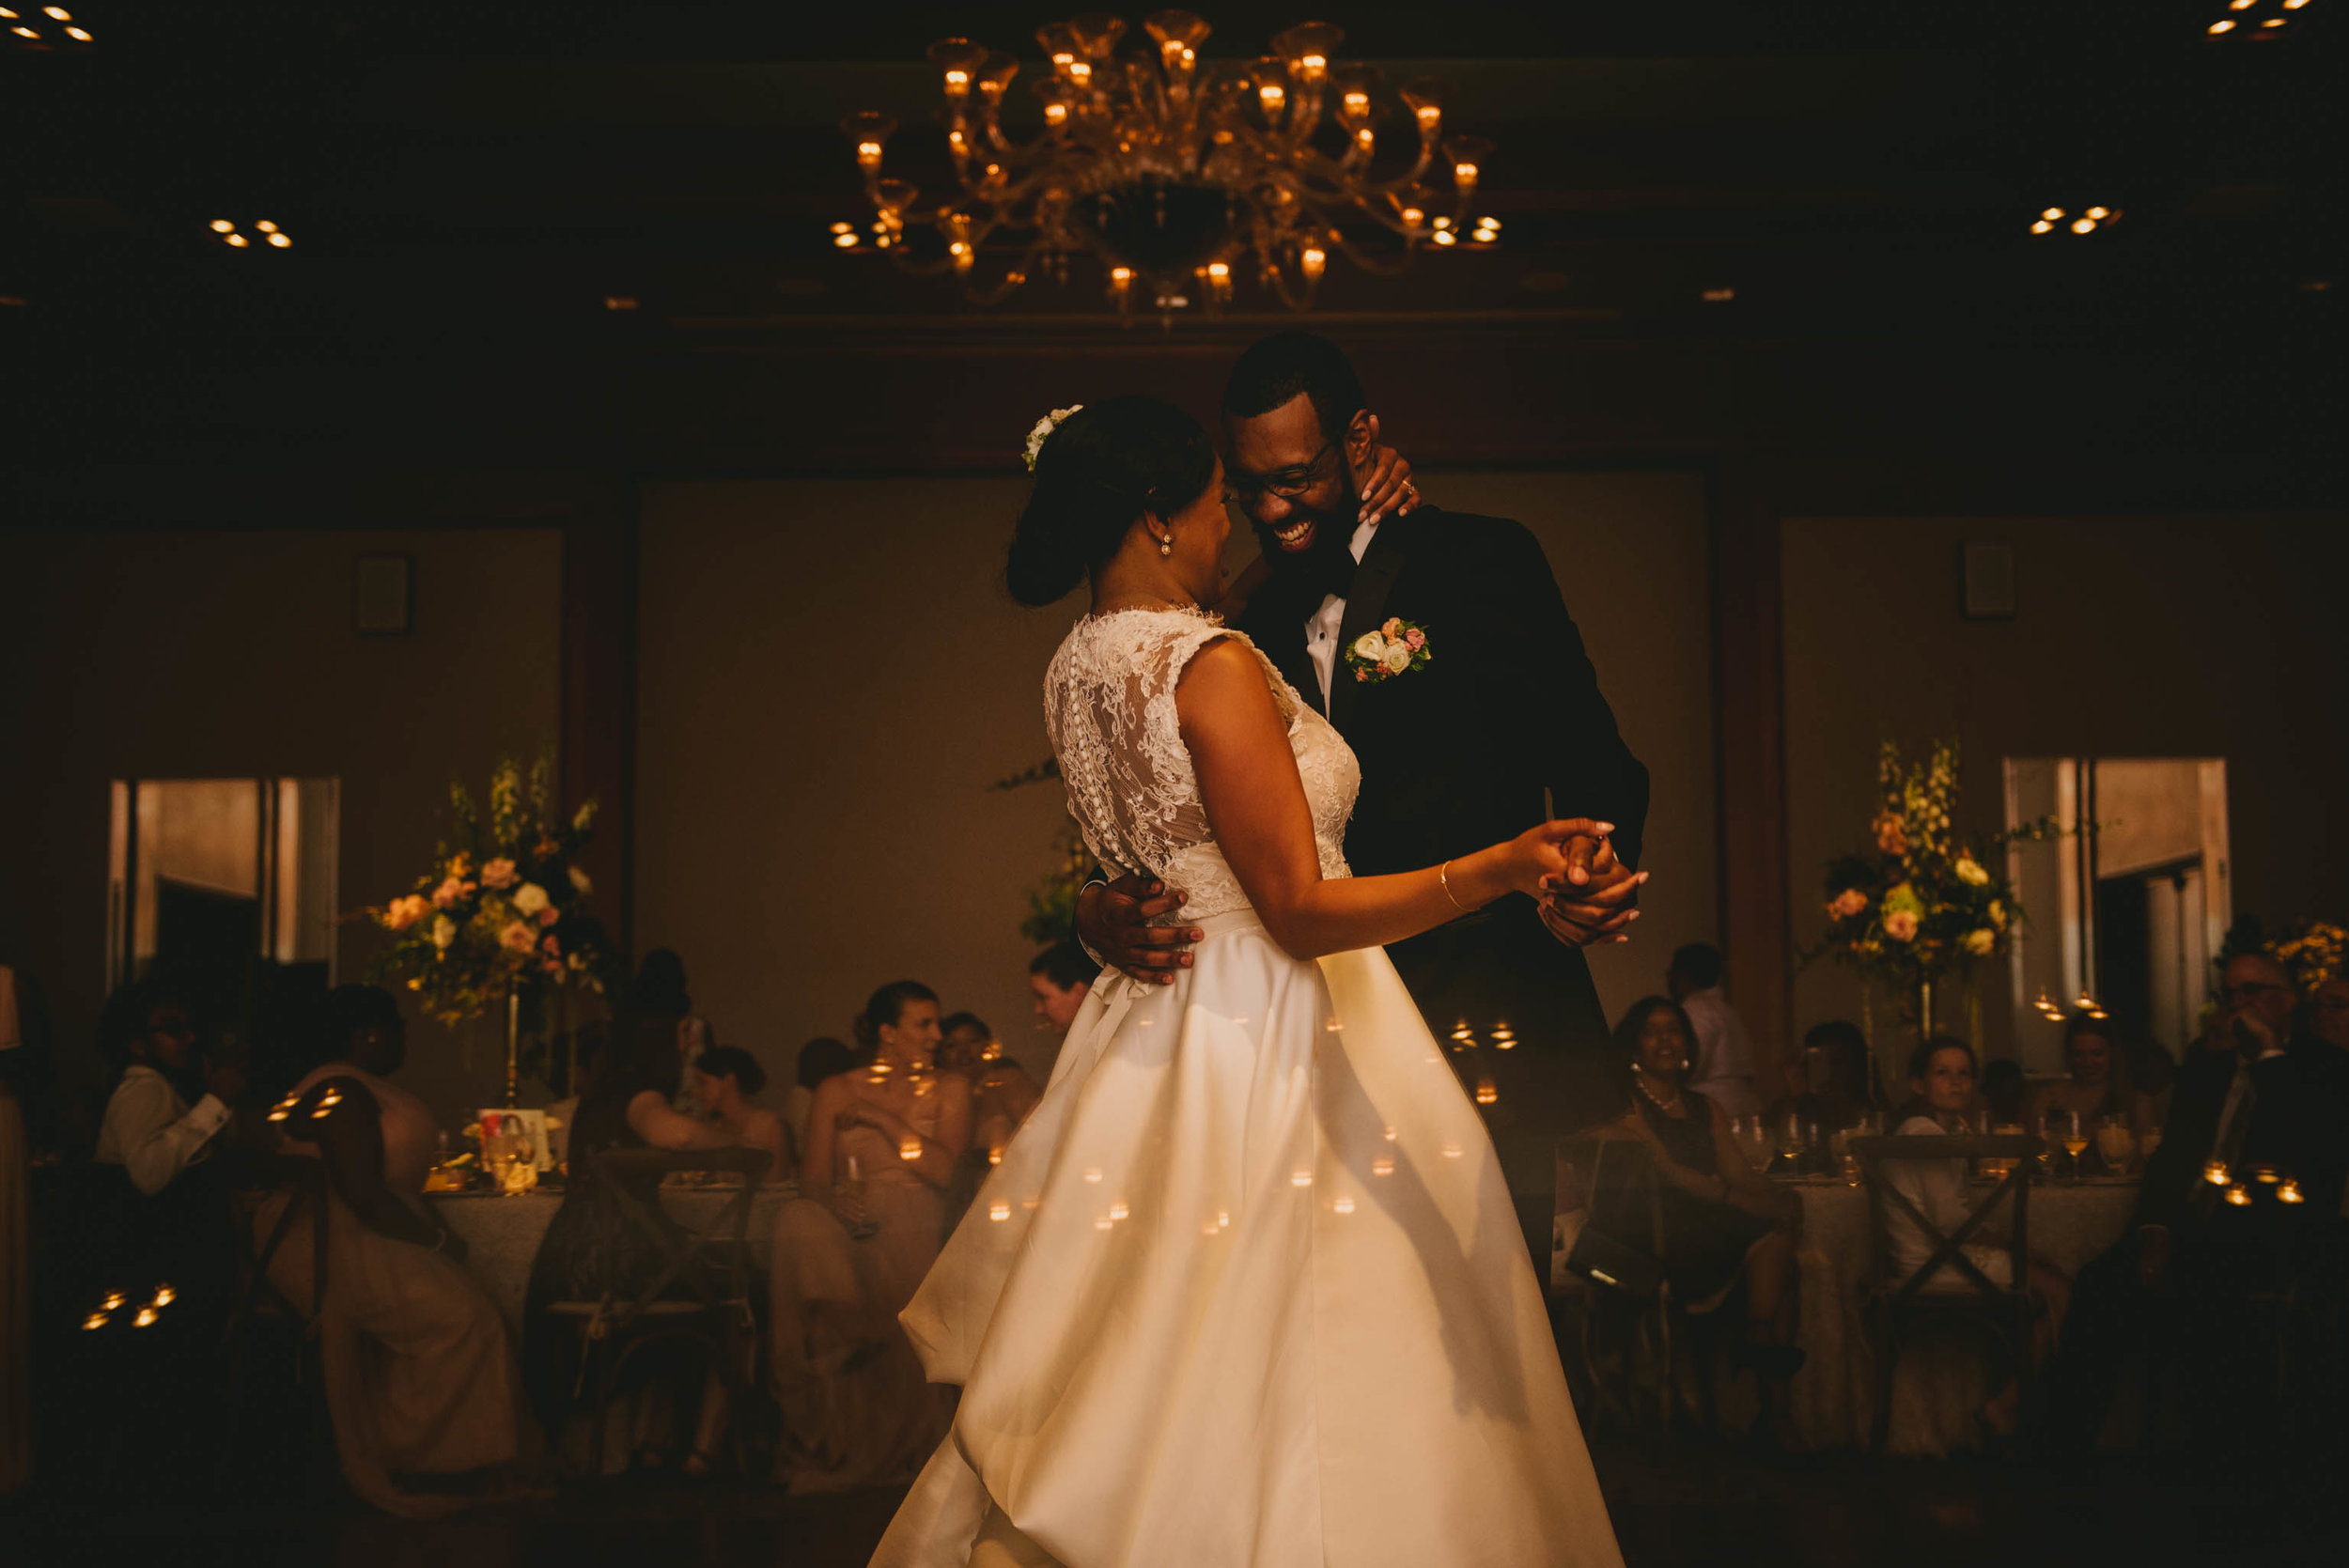 The bride and groom enjoying their first dance during their reception at the Umstead Hotel in Cary, NC